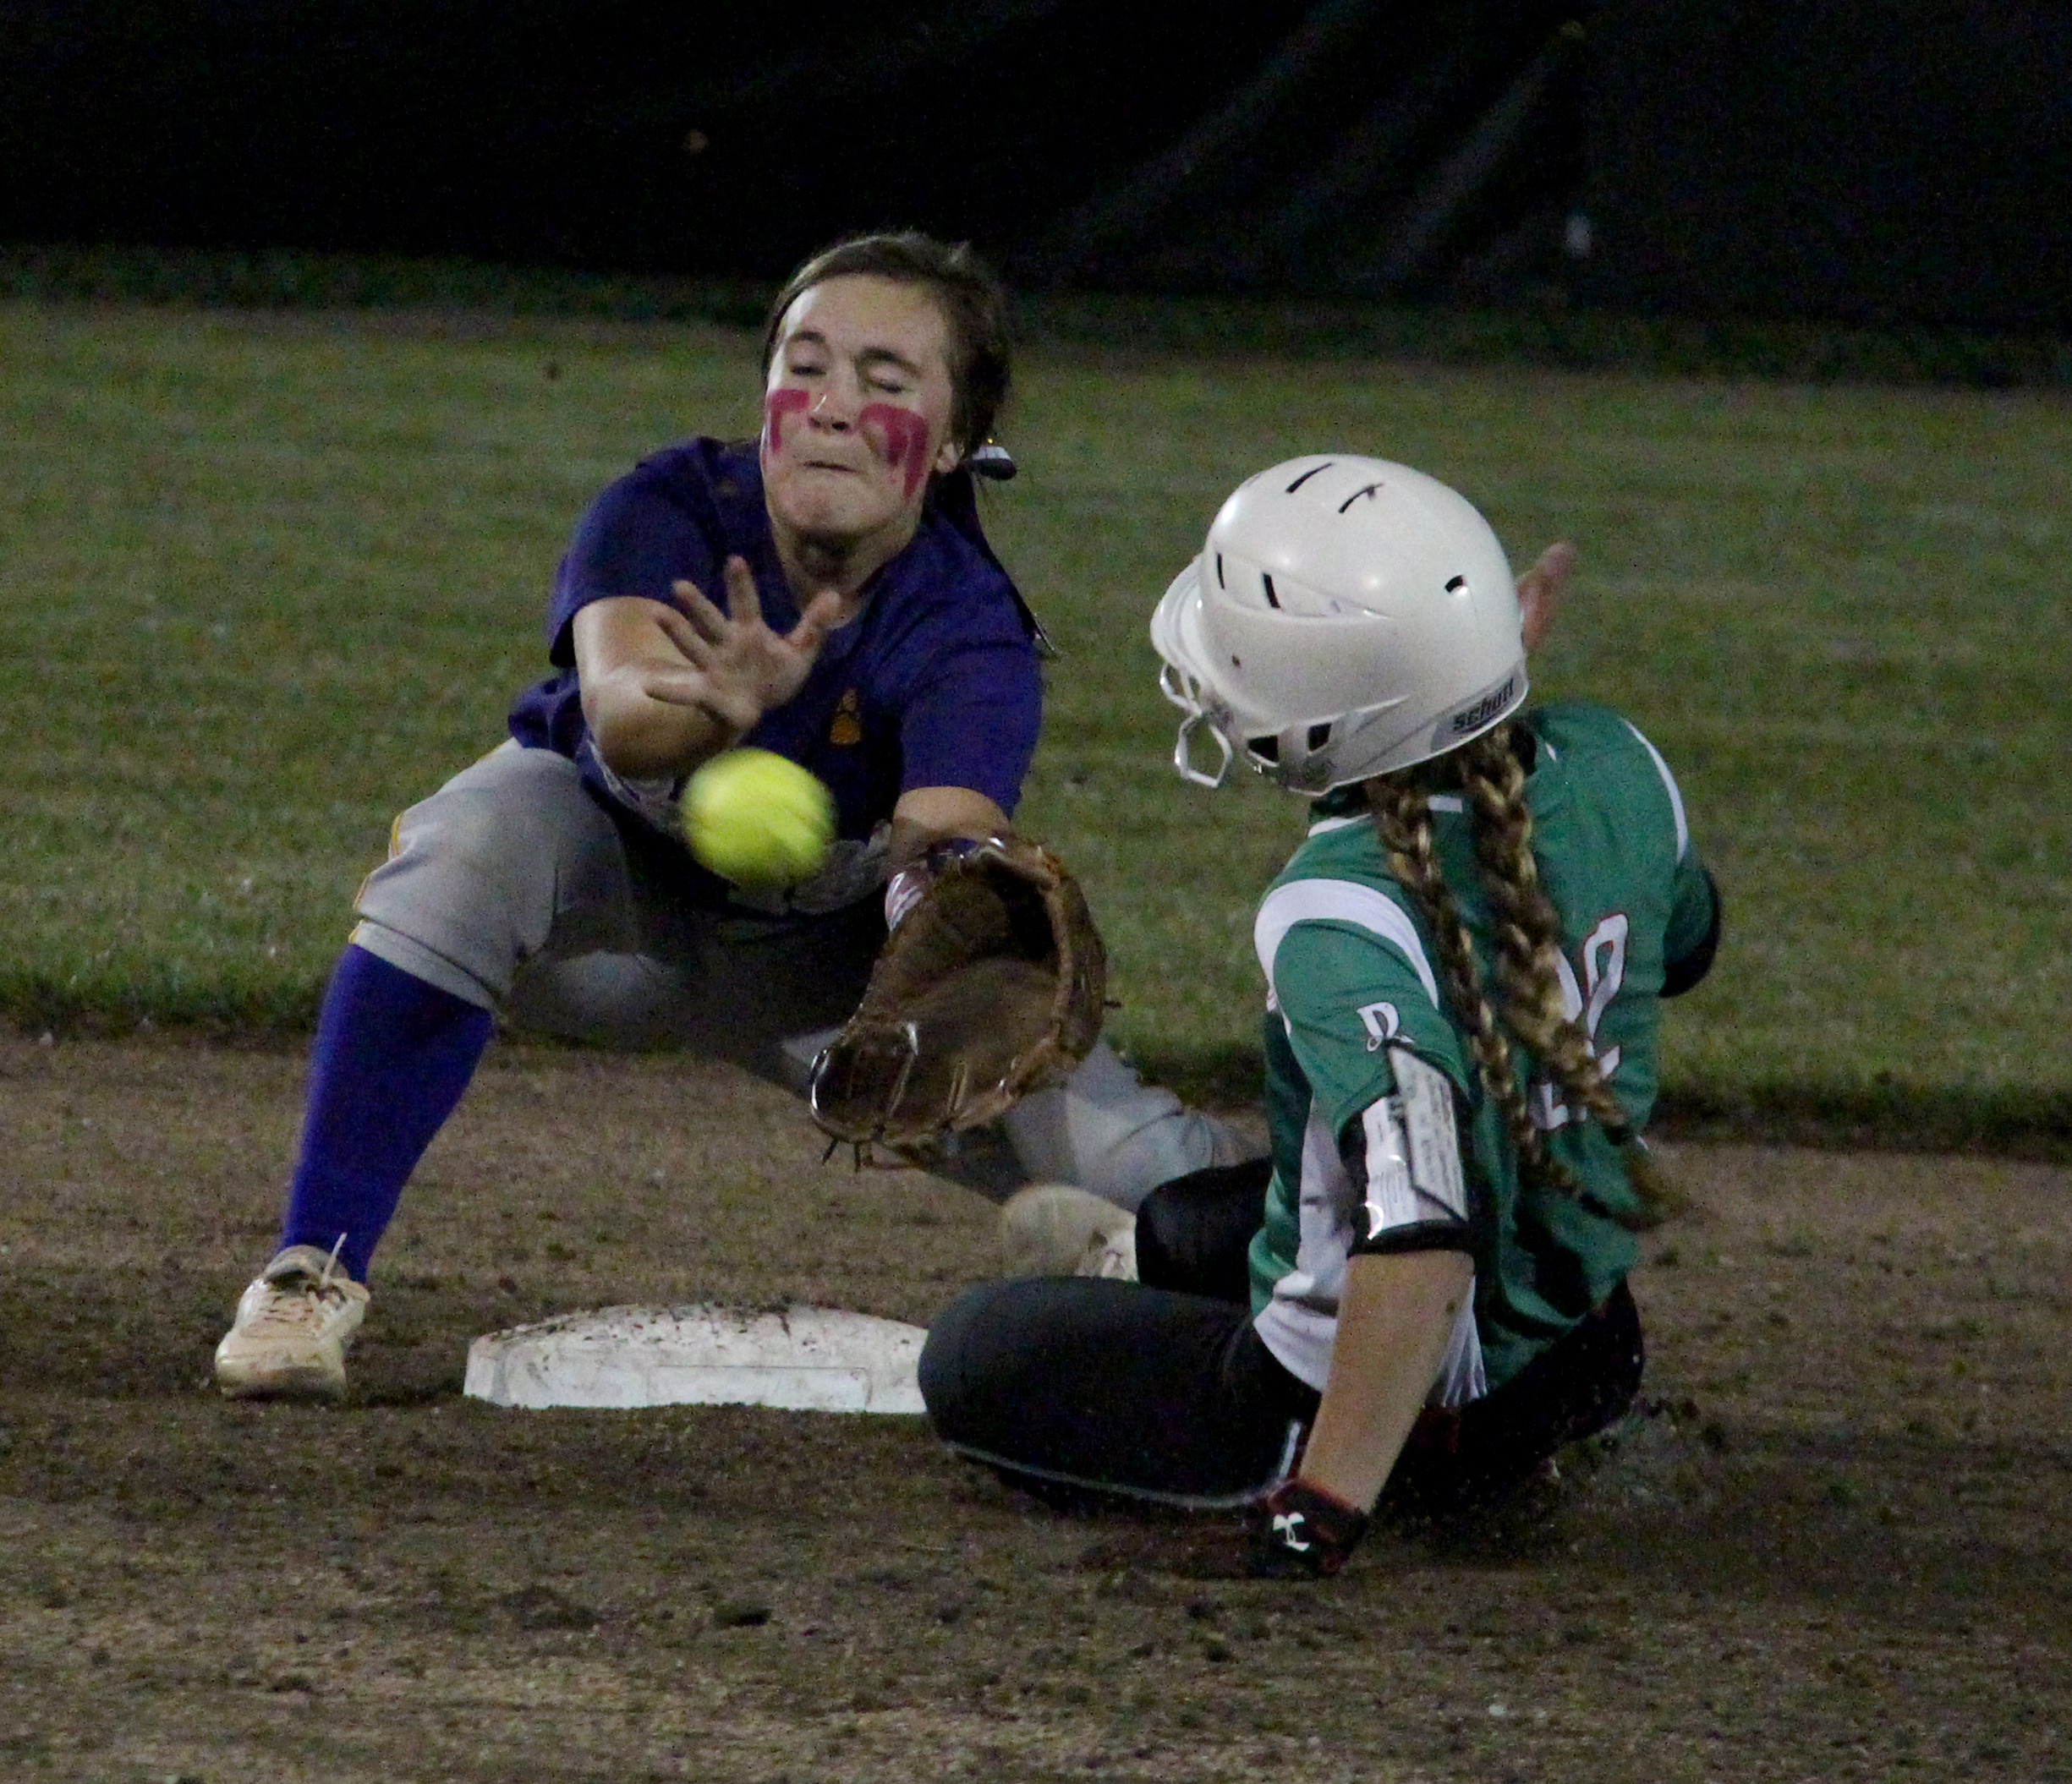 ROSS MARTIN/Citizen photo North Platte junior shortstop Alley Rickel, left, fields a throw from catcher Kyra Patch (not pictured) trying to catch Mid-Buchanan's Jill Rumpf stealing during a Class 2 District 14 first-round game Wednesday, Oct. 5 at Lathrop High School in Lathrop, Mo.